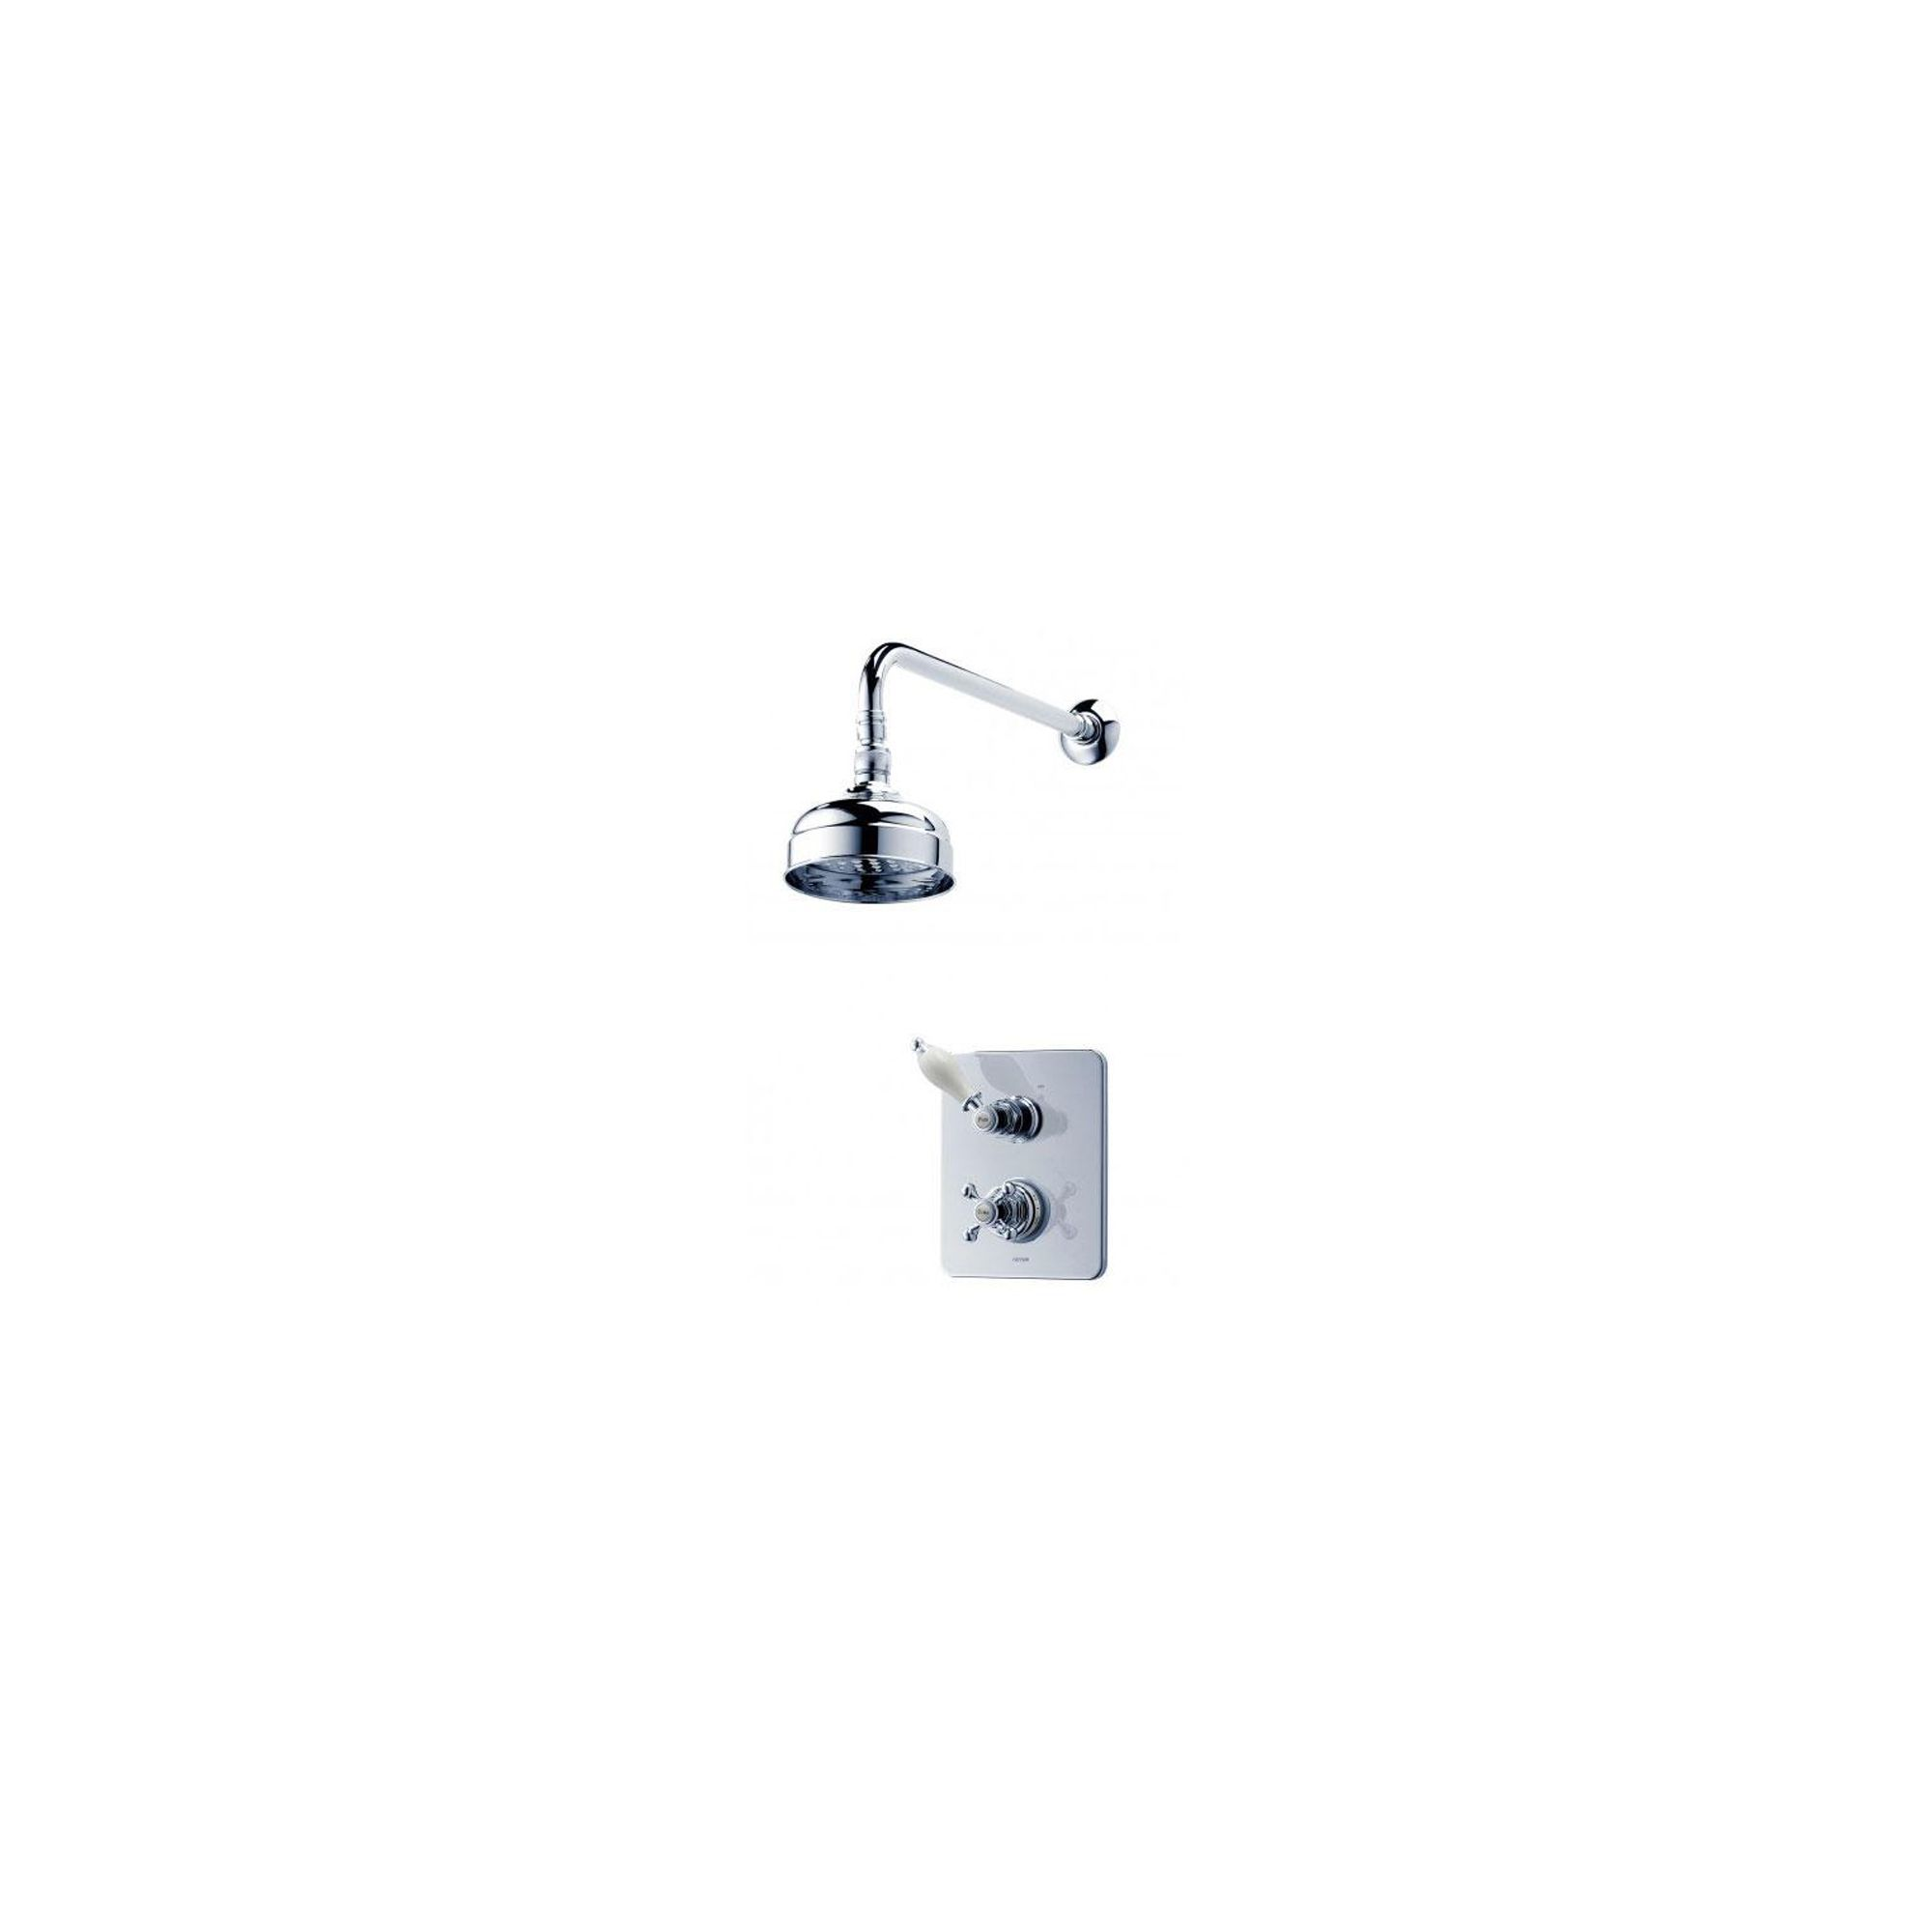 Triton Avon Thermostatic Dual Control Mixer Chrome at Tesco Direct